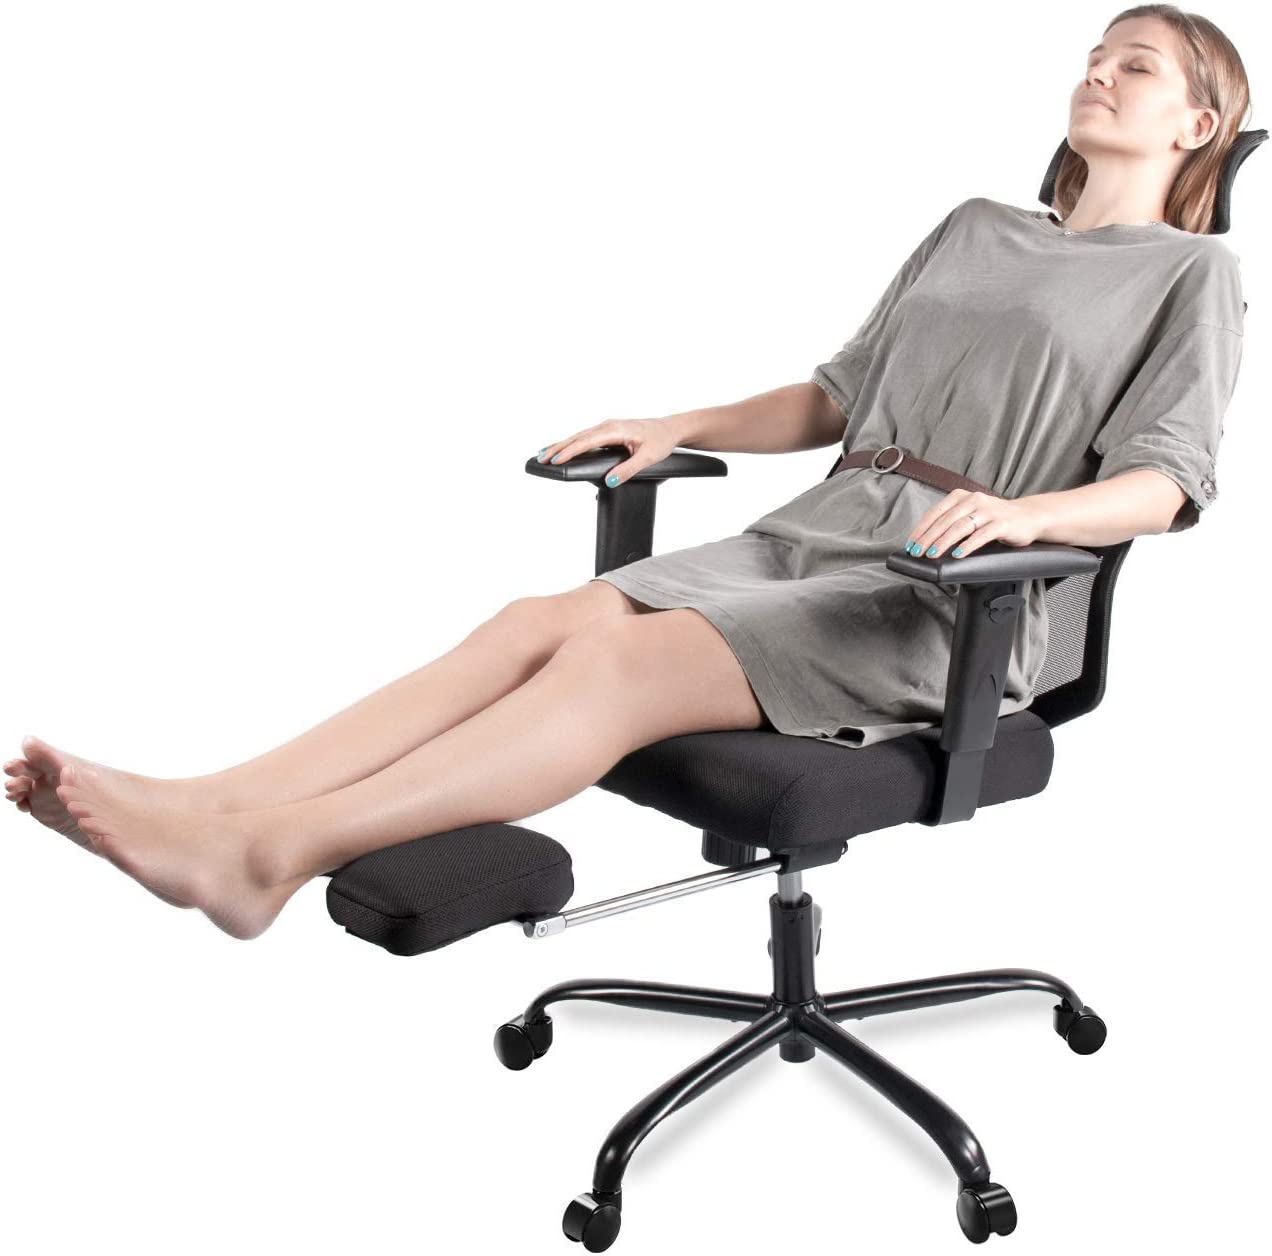 61r5Xy6t6cL. AC SL1309 - What is The Best Computer Chair For Long Hours Sitting? [Comfortable and Ergonomic] - ChairPicks